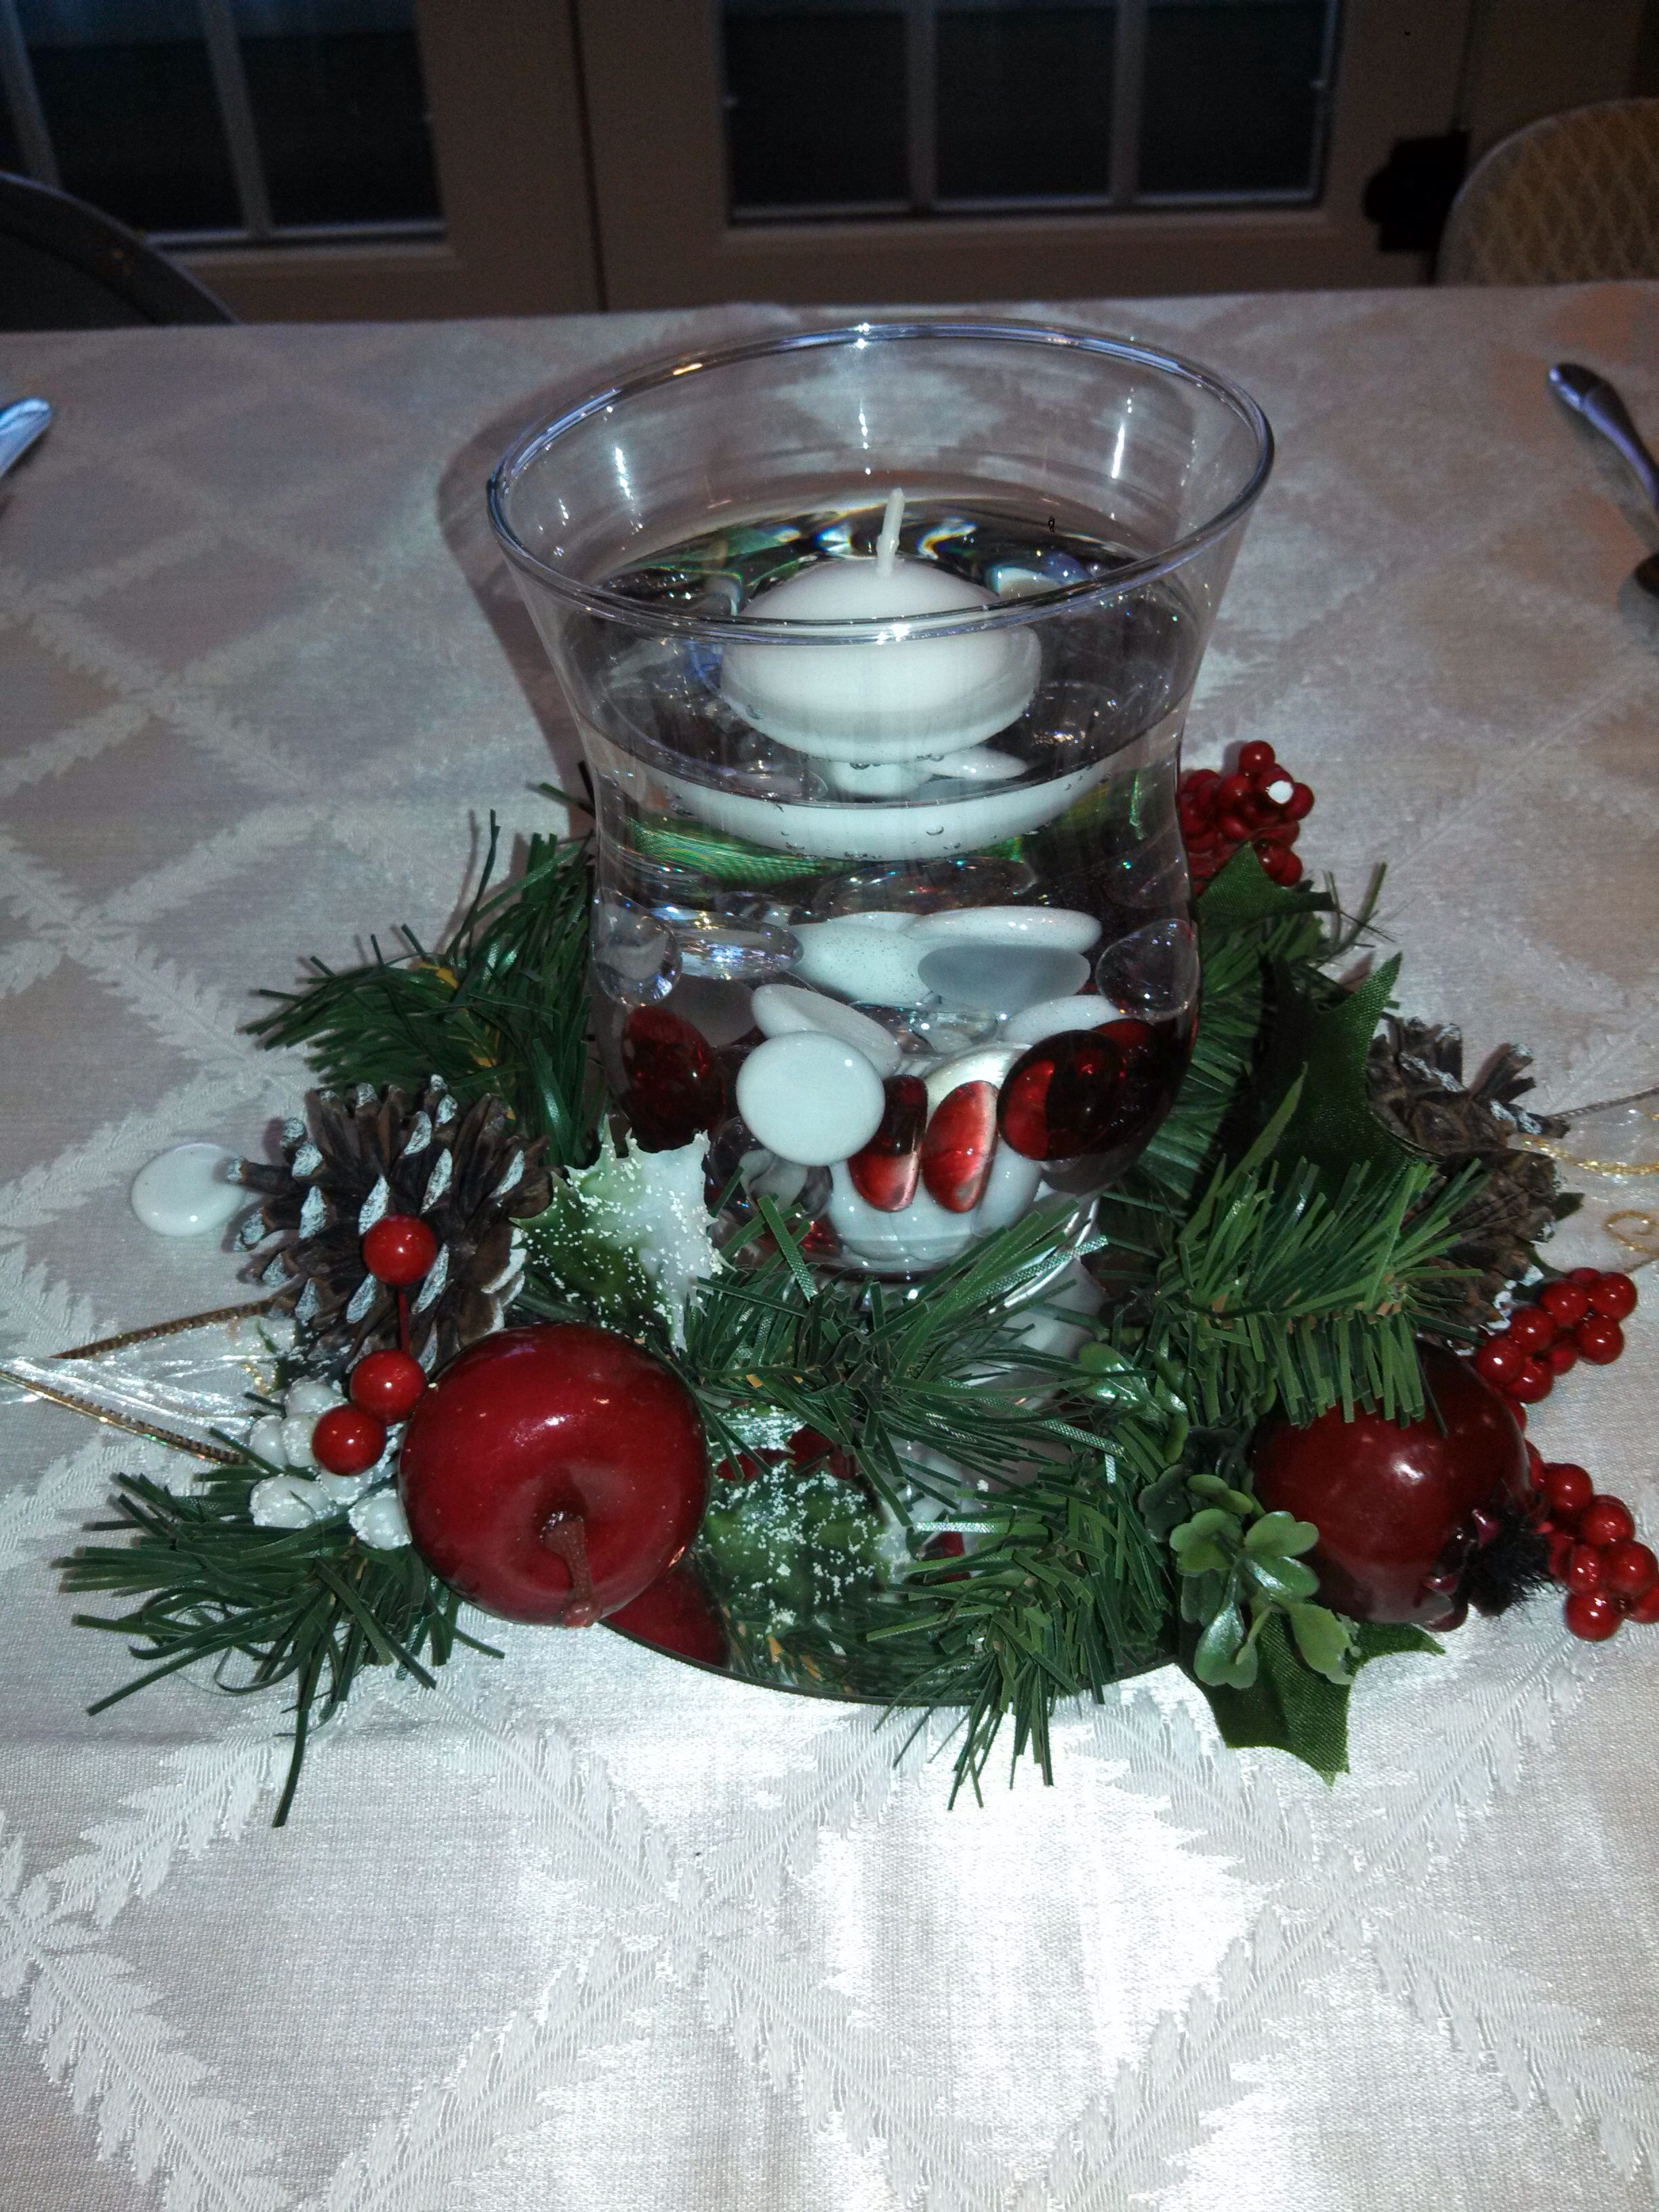 Centerpiece for the holidays Mirror decorations from michaels